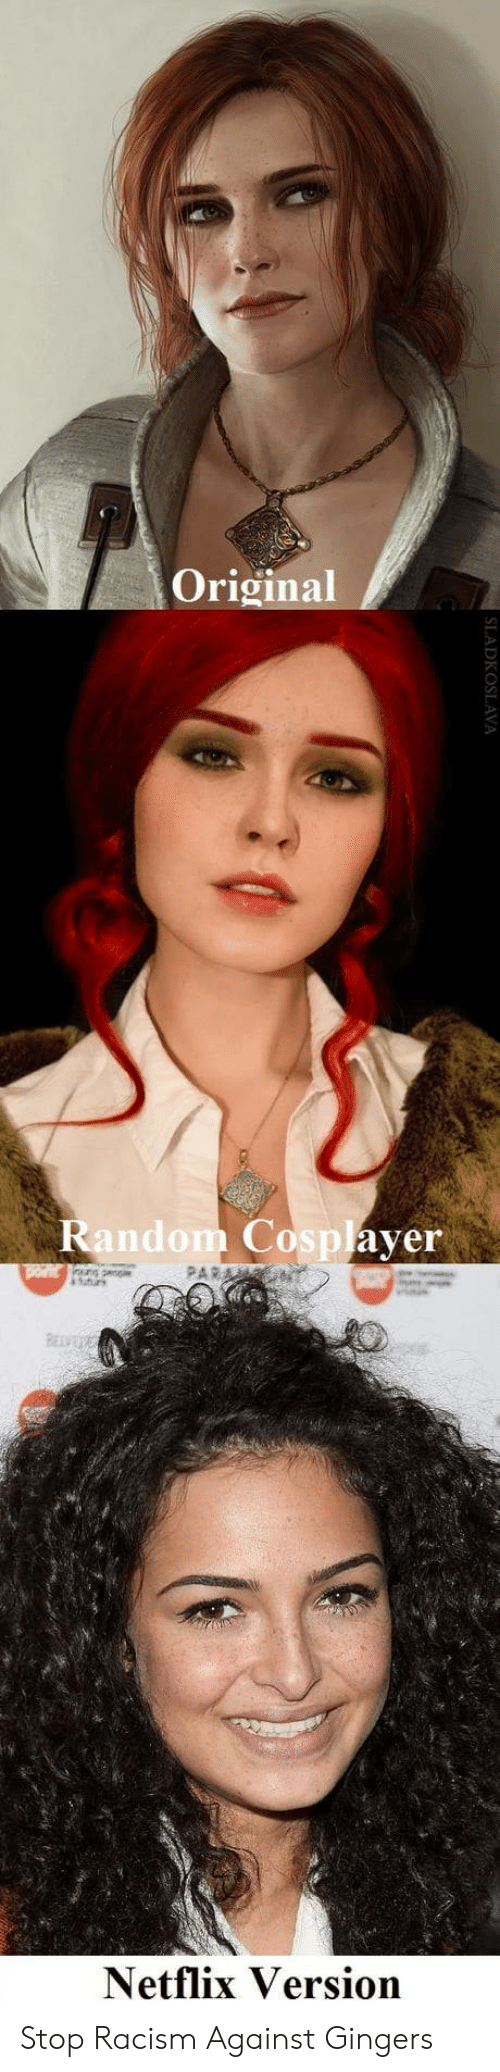 Netflix, Racism, and Random: Original  Random Cosplayer  Netflix Version Stop Racism Against Gingers